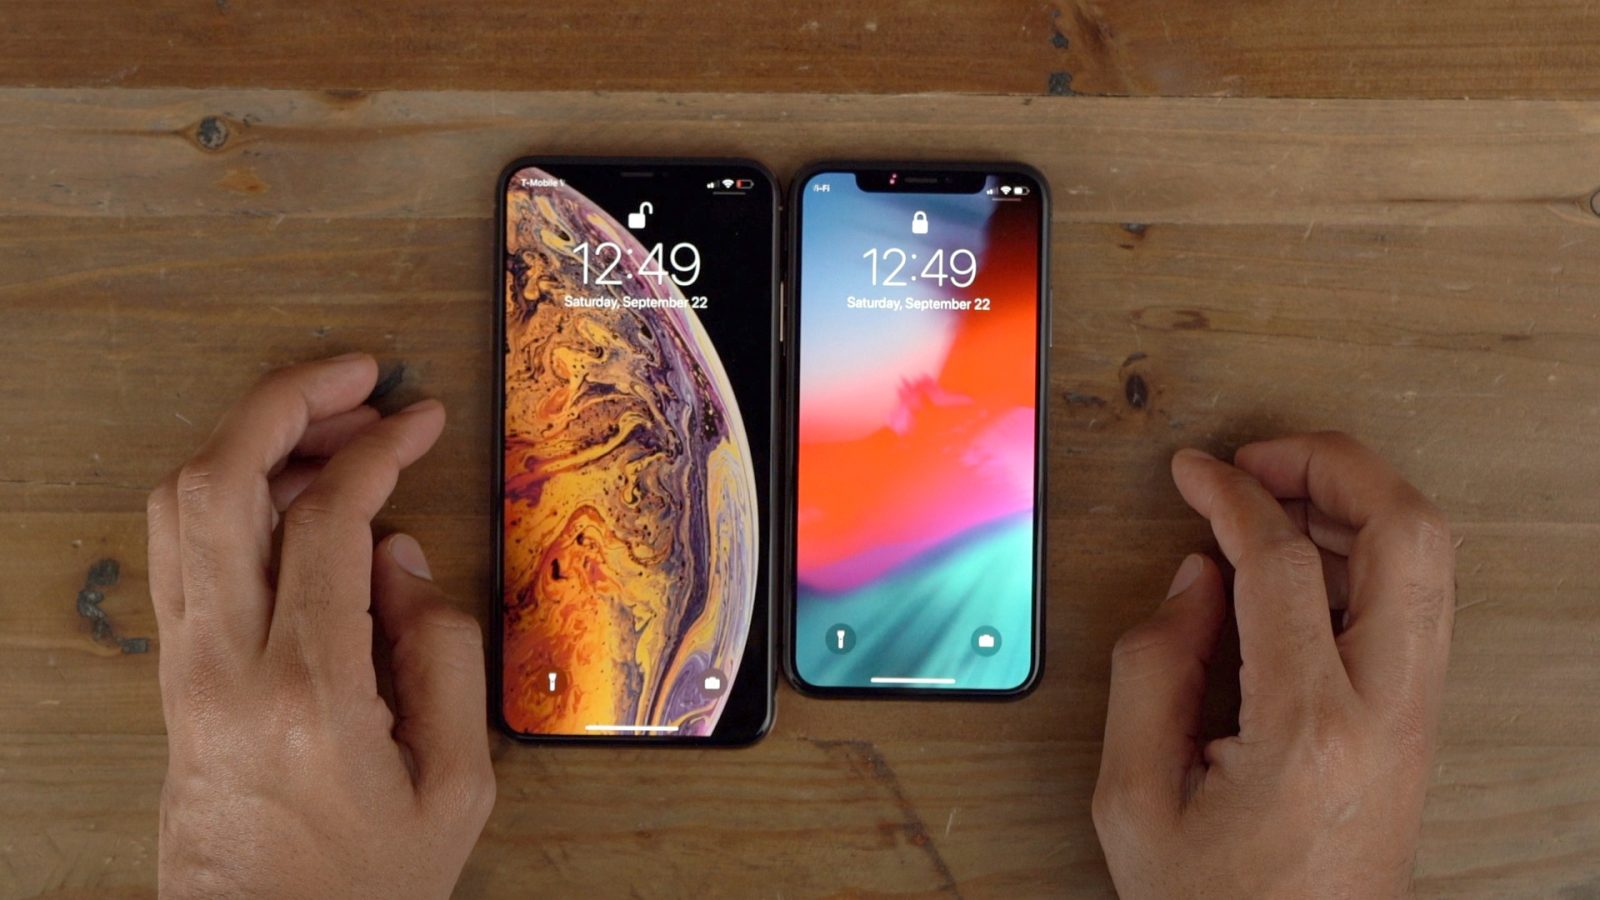 iPhone XS Max – How to Change Lock Screen